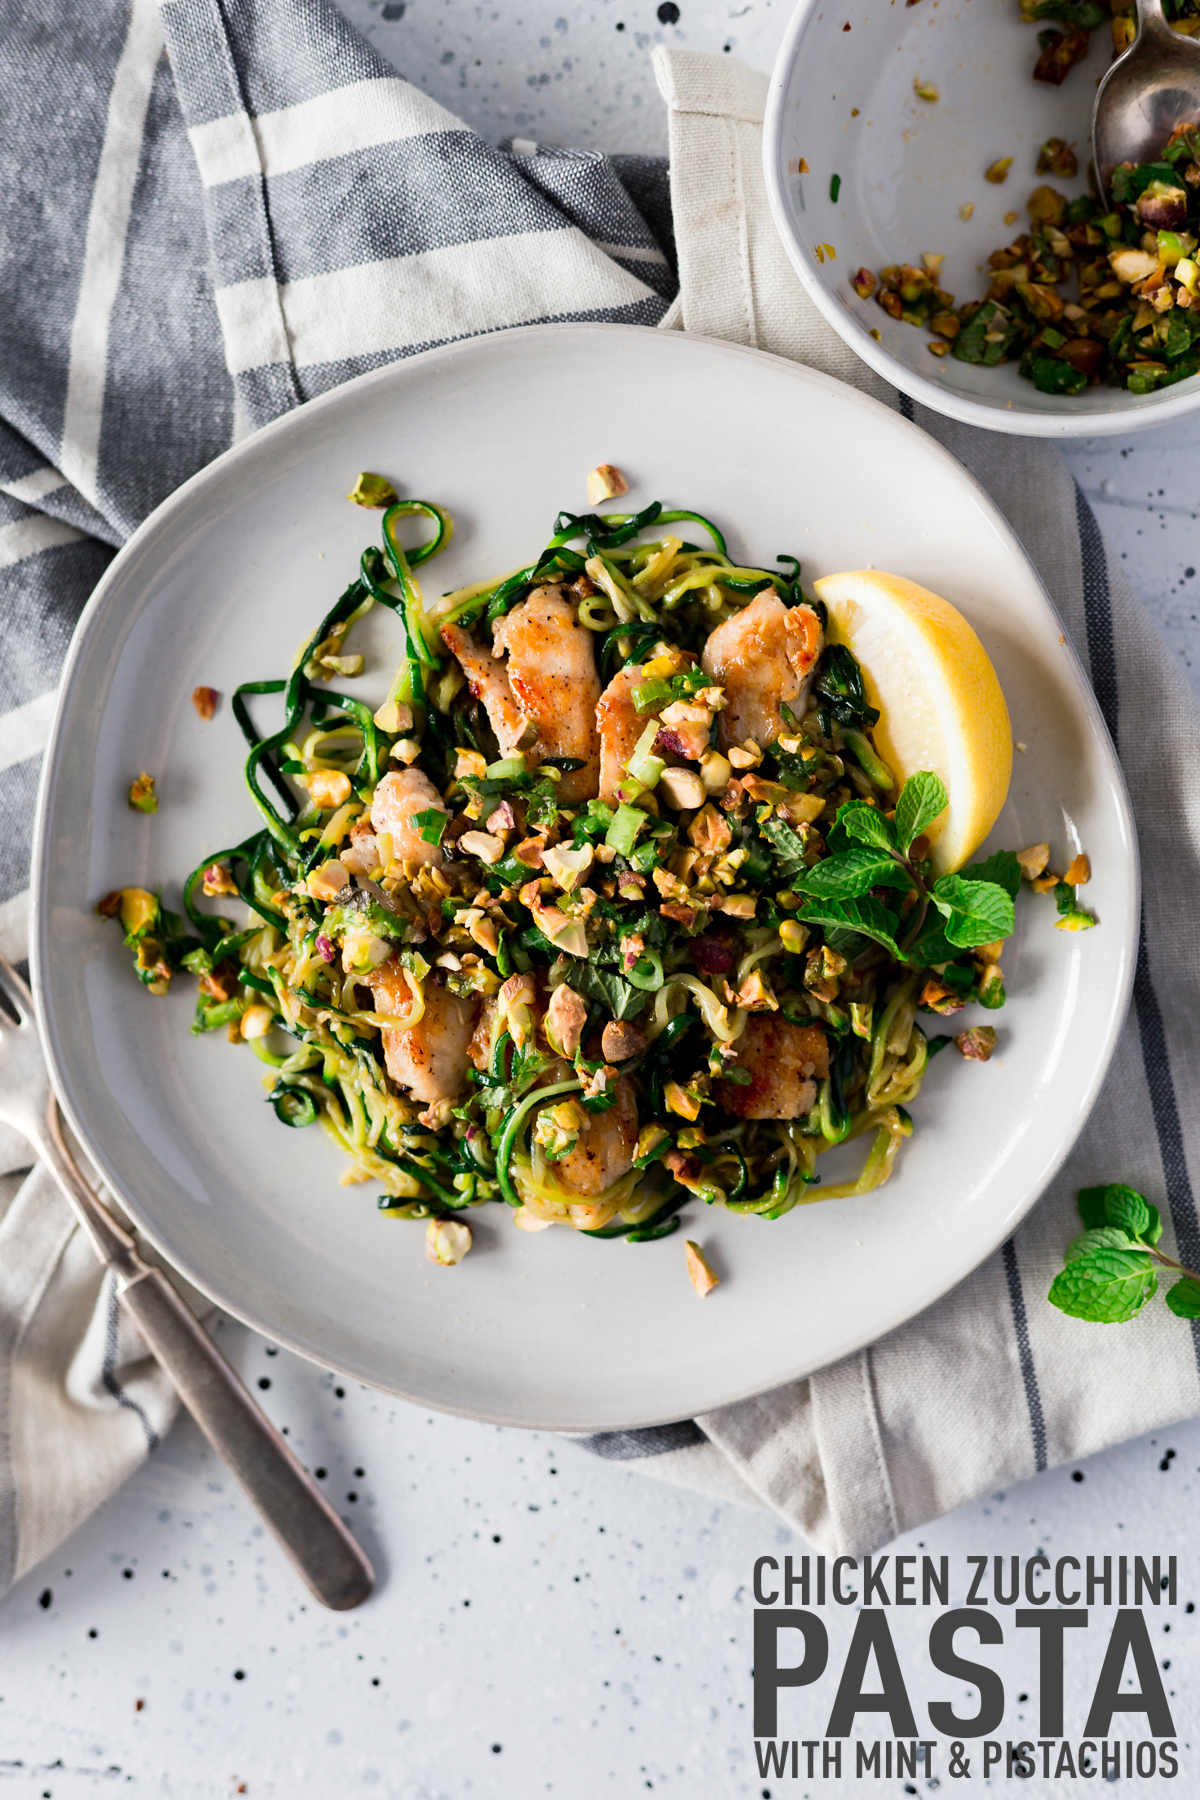 Chicken Zucchini Pasta Zoodles with Mint & Pistachios Recipes